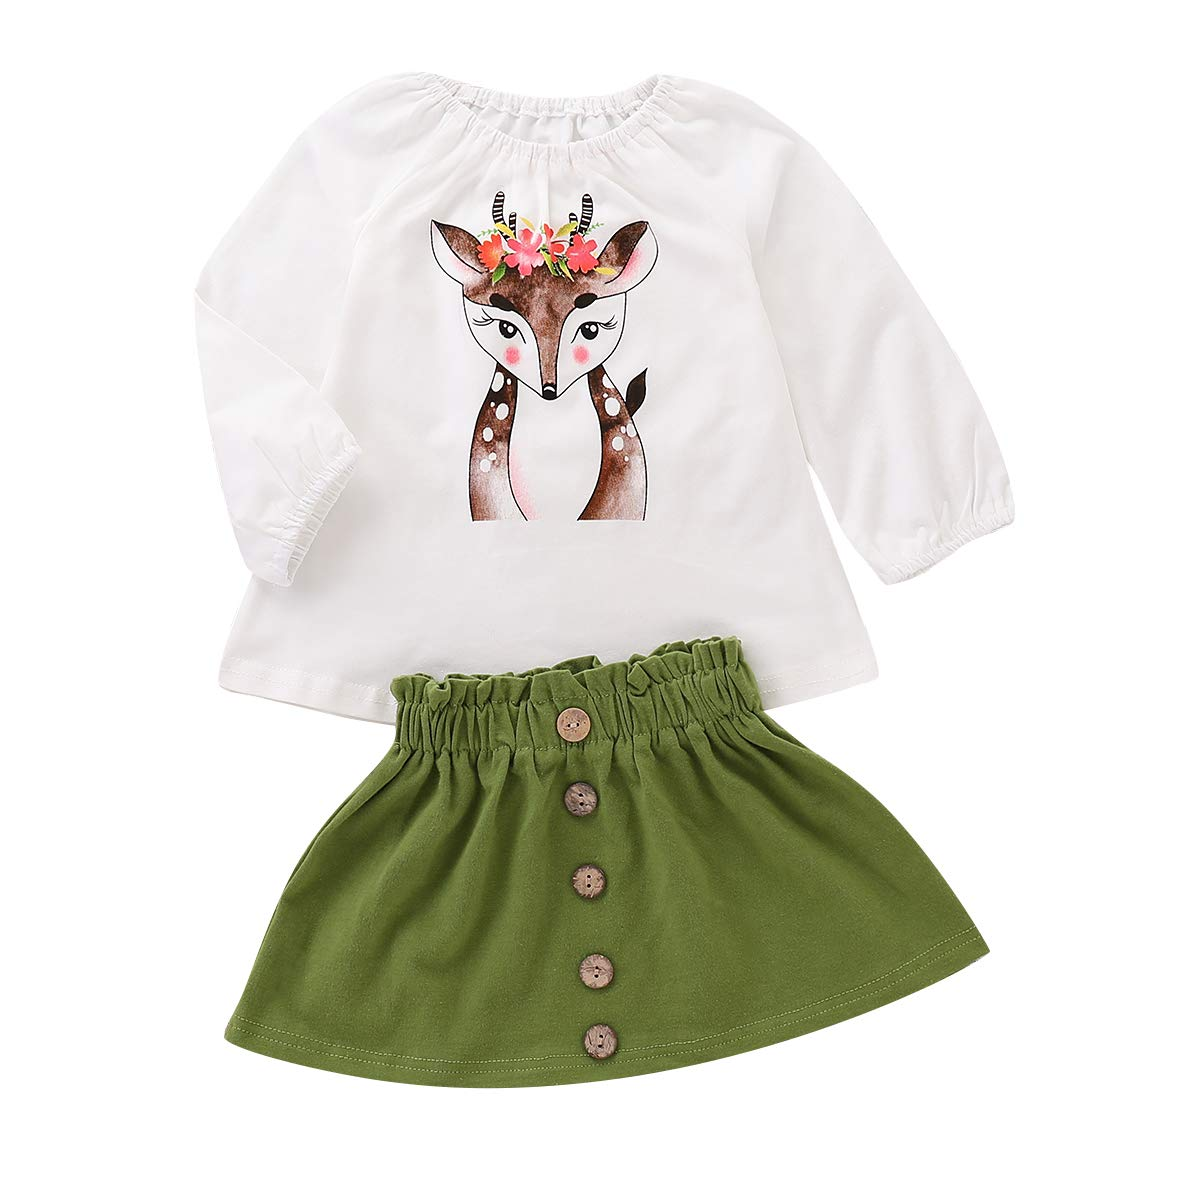 Treafor Toddler Girl Fall Winter Clothes | Deer Printed T-Shirt White Shirt Top Blouse + Button Skirt